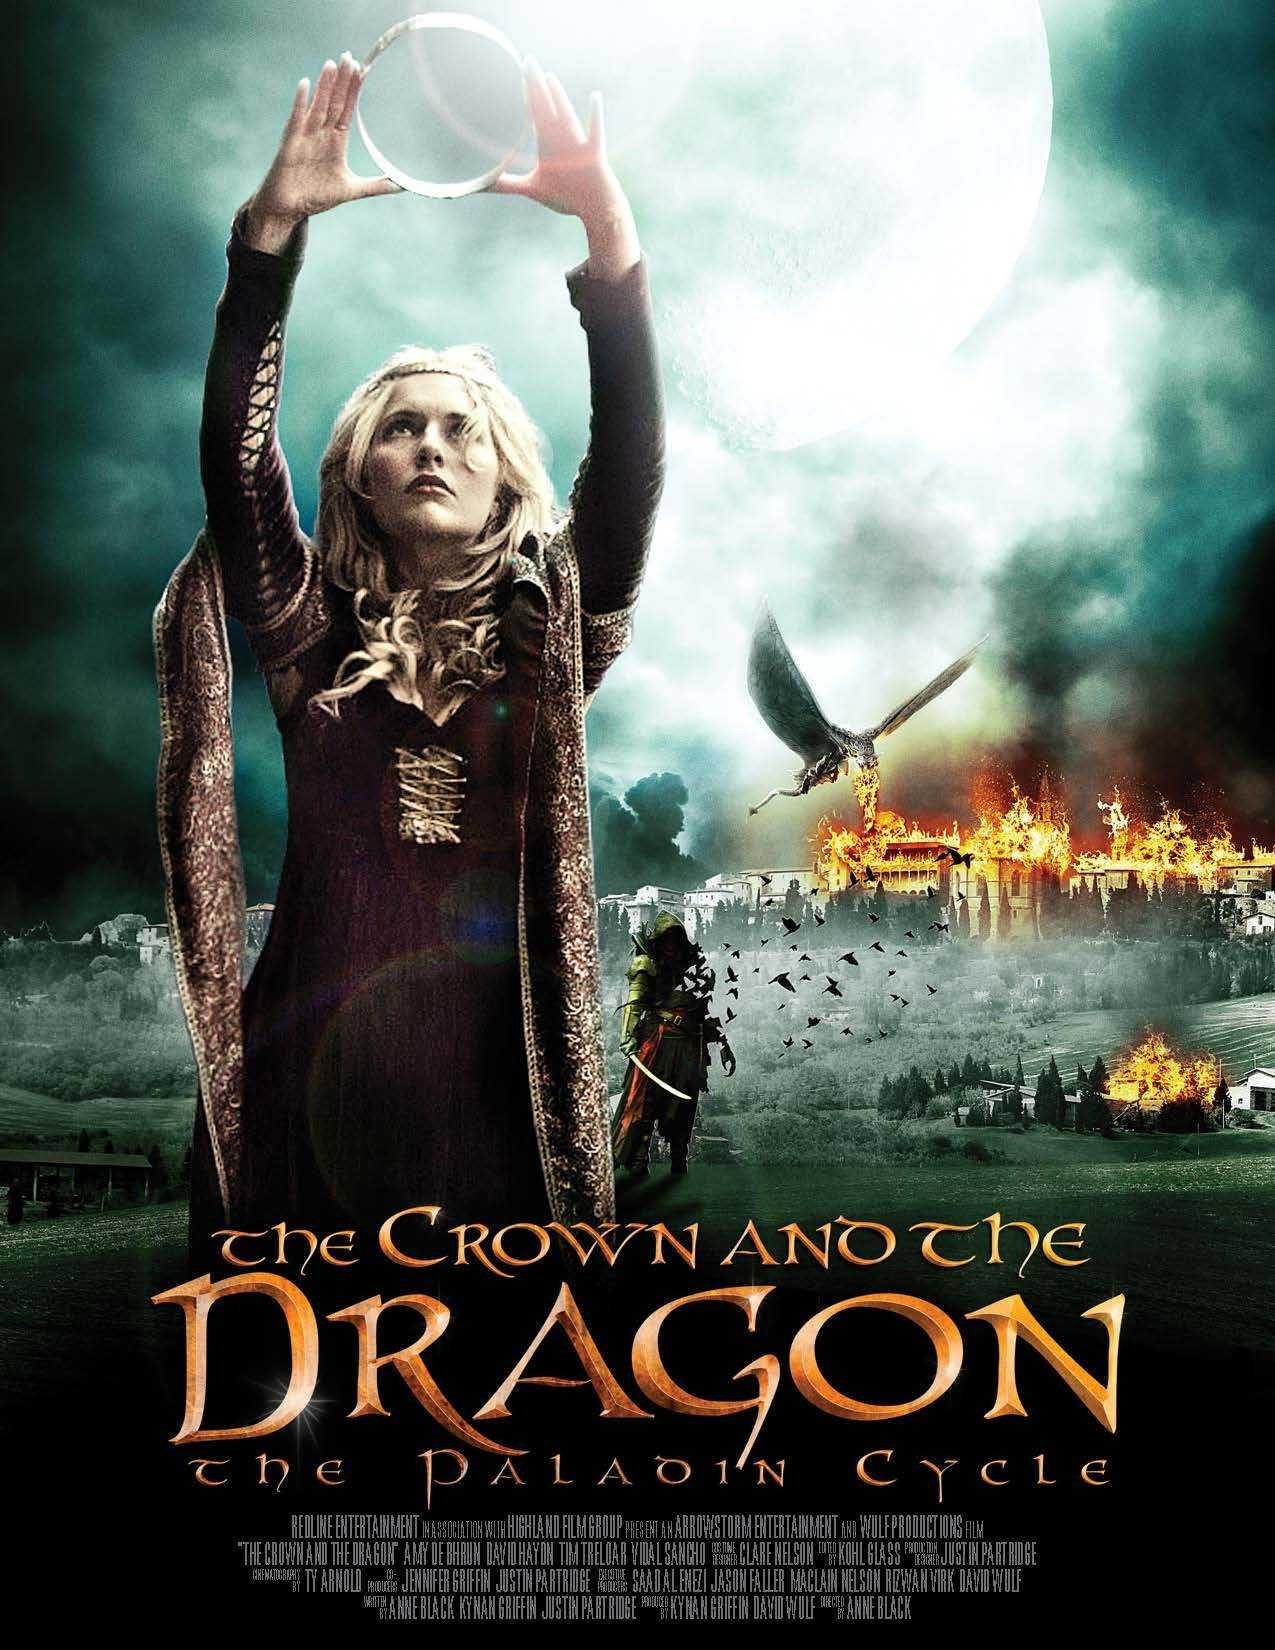 The Crown and the Dragon - The Paladin Cycle poster